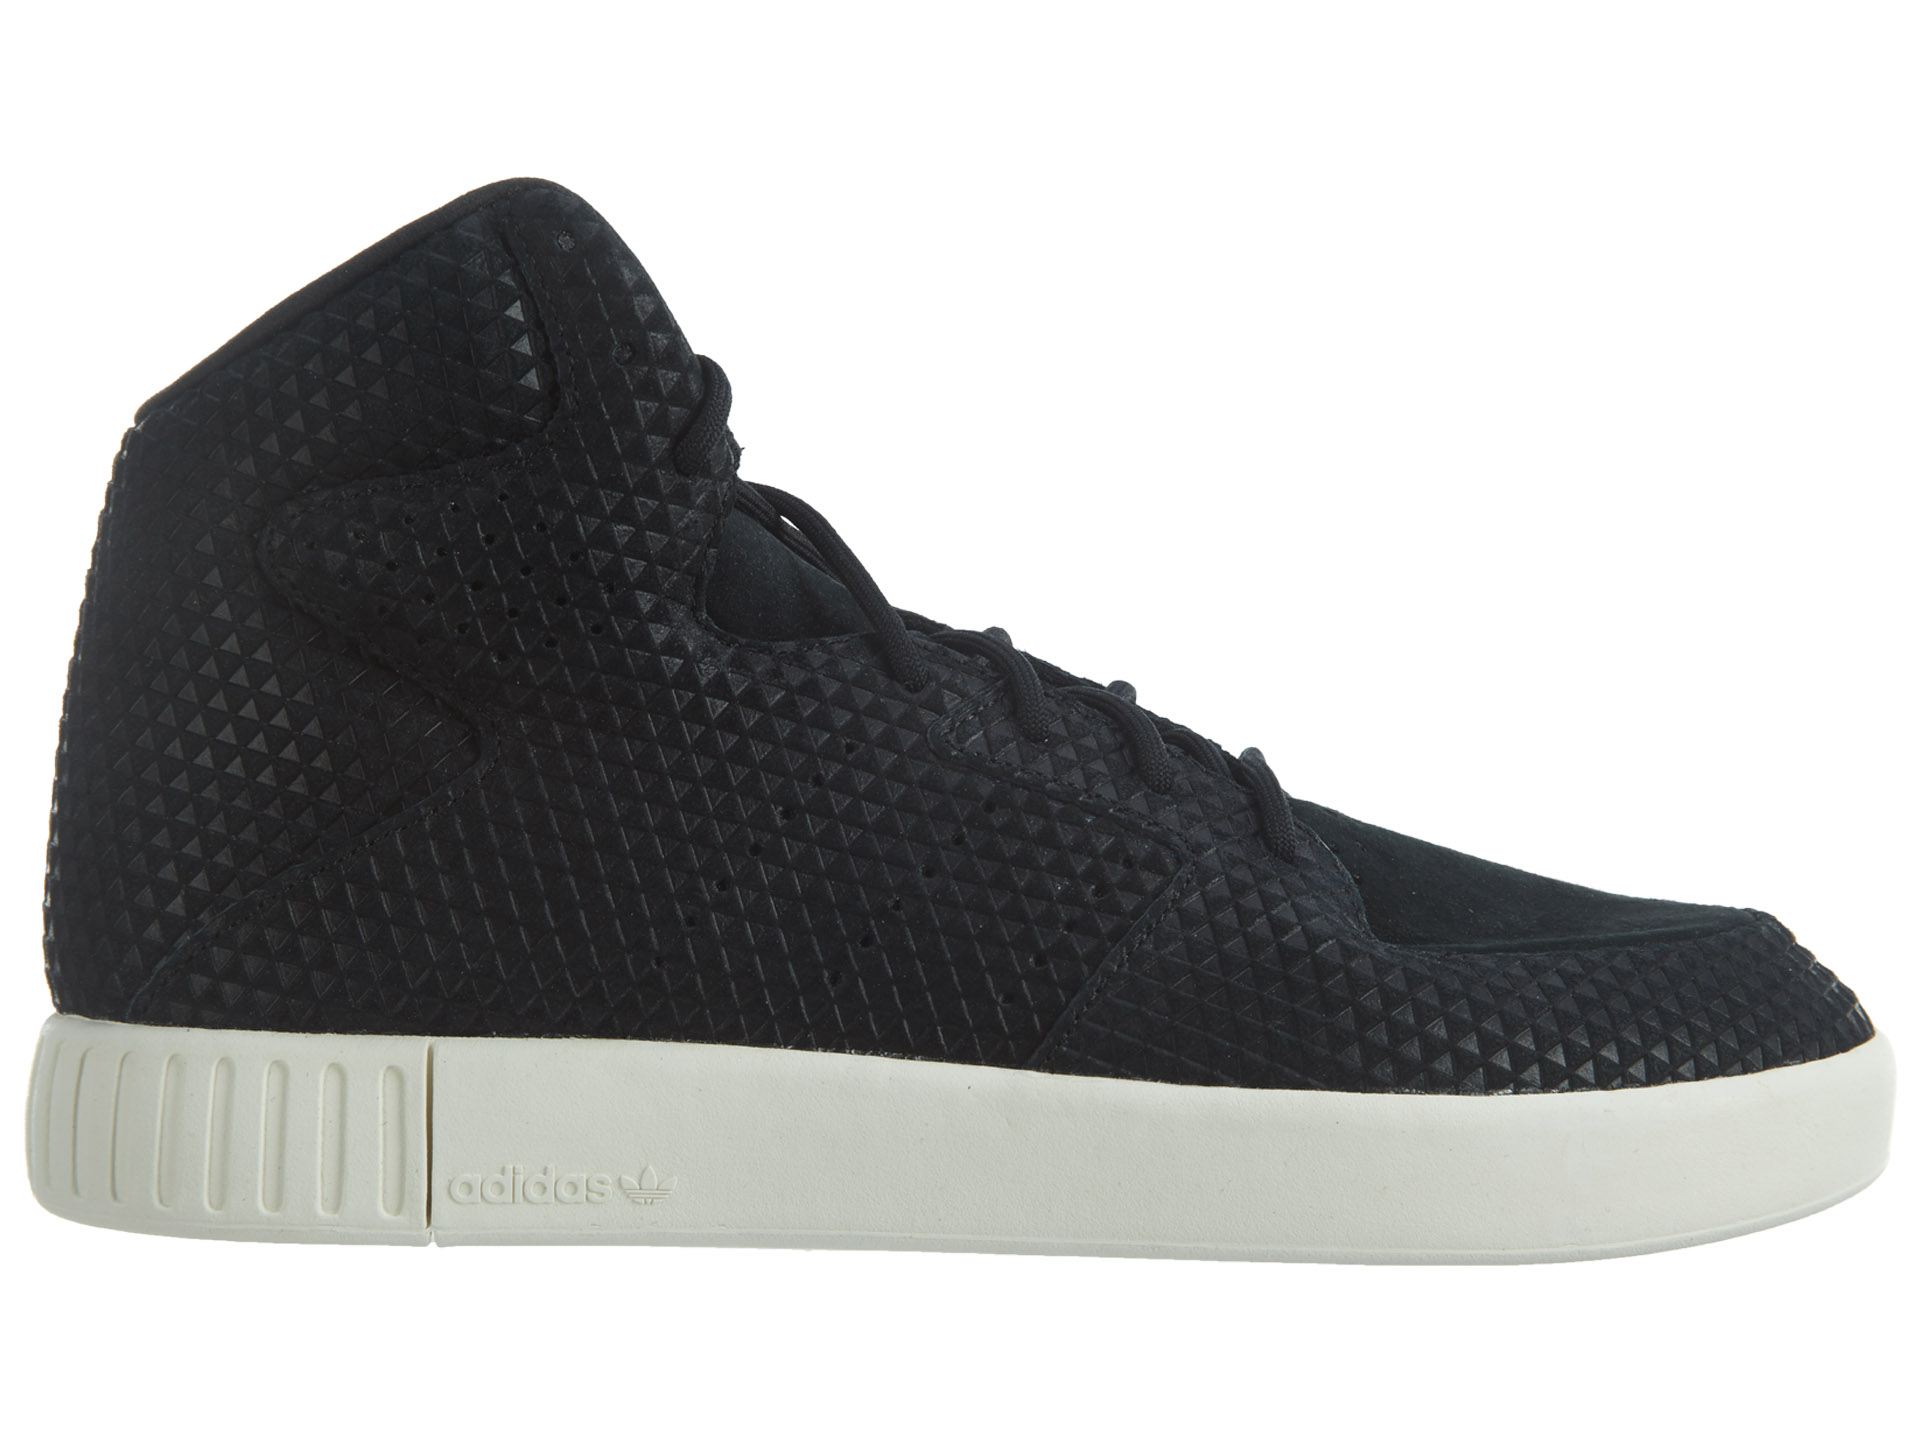 adidas Tubular Invader 2.0 BlackBlack Off White